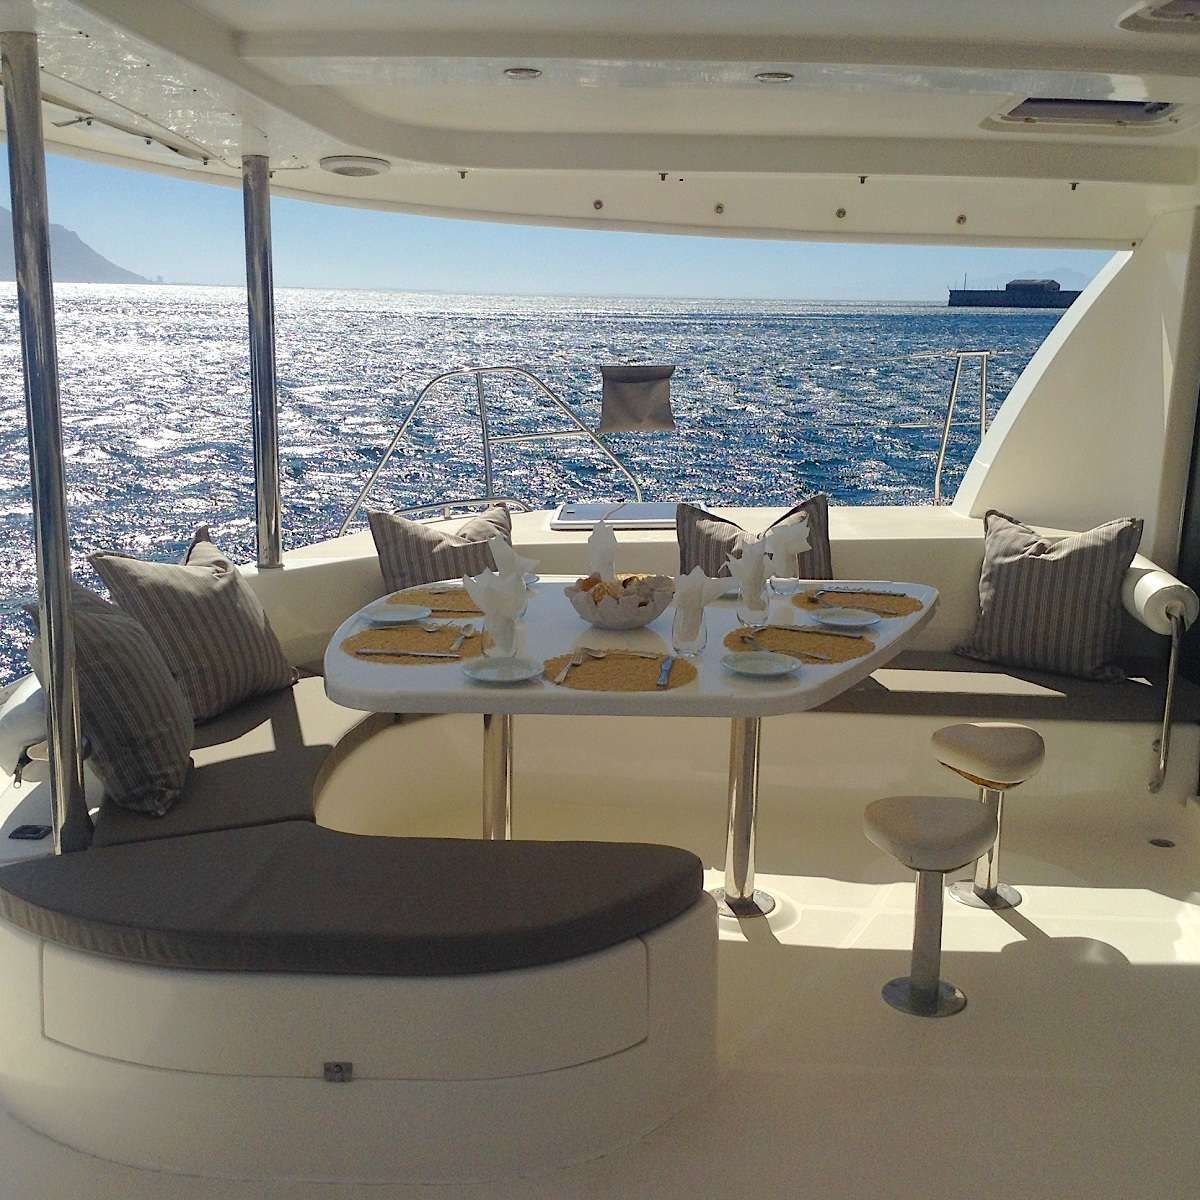 Alfresco dining in our protected cockpit.